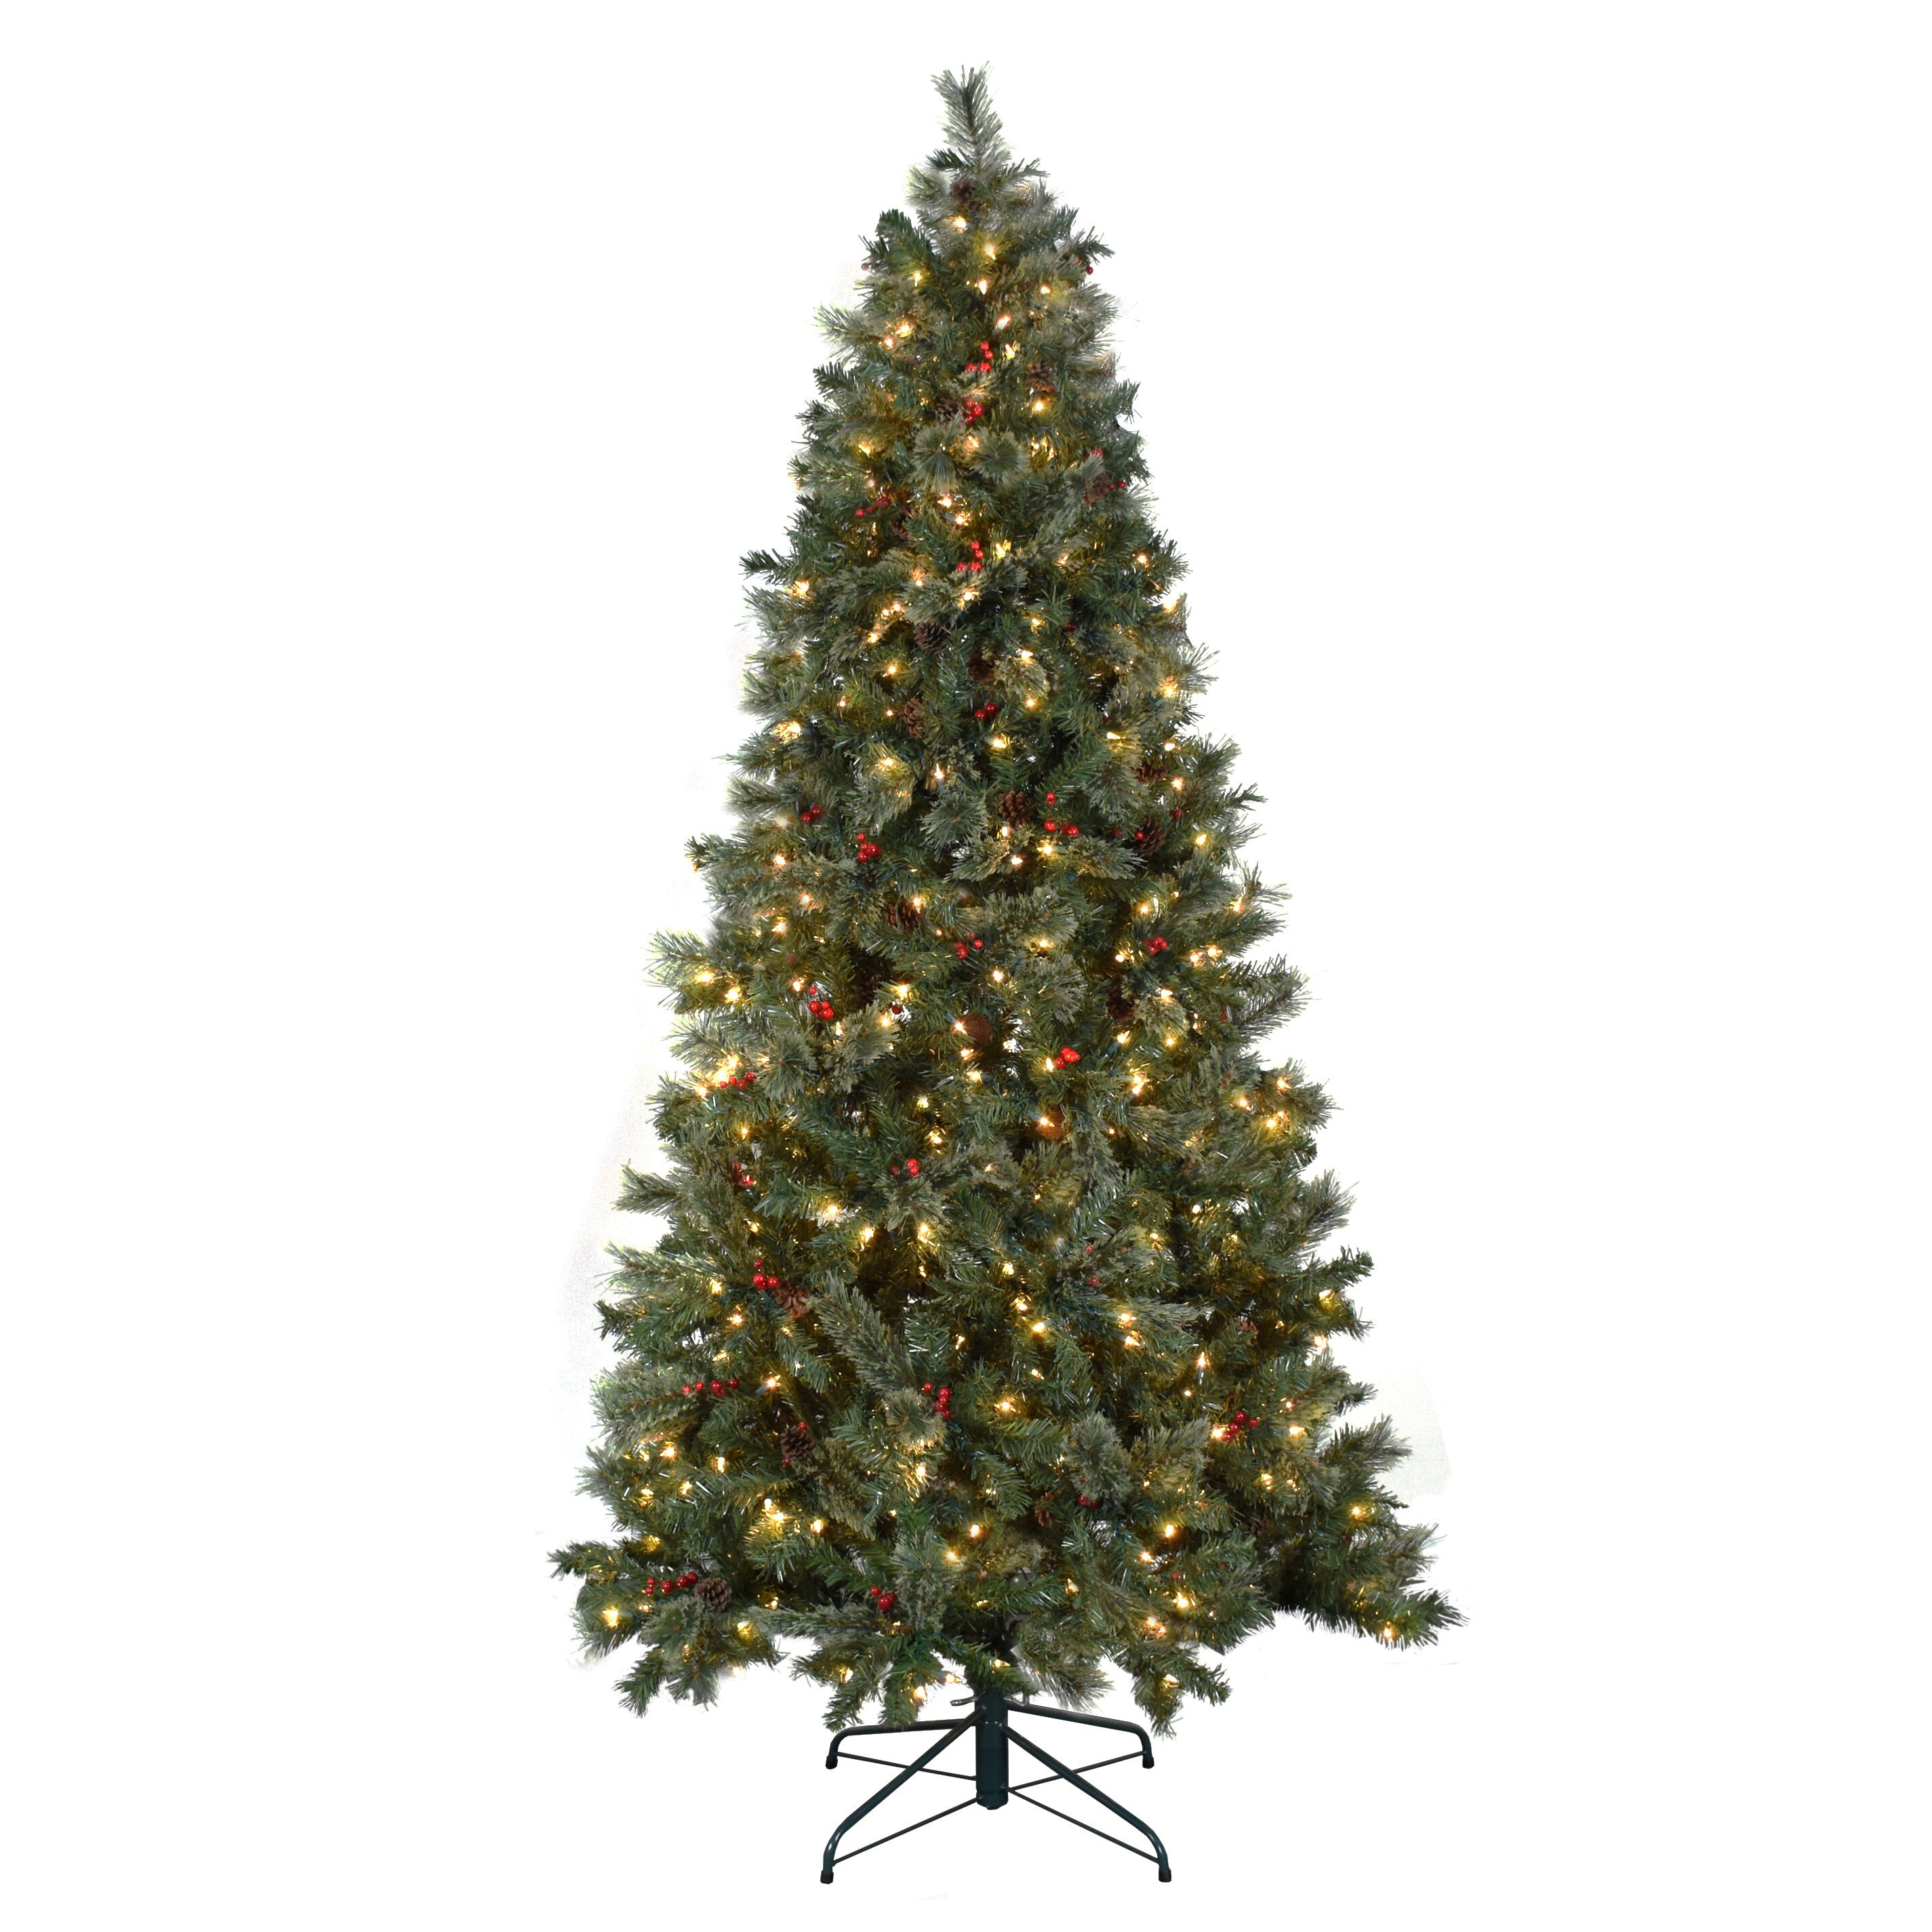 Artificial Christmas Trees: Astella 7.5' Green Artificial Christmas Tree With 500